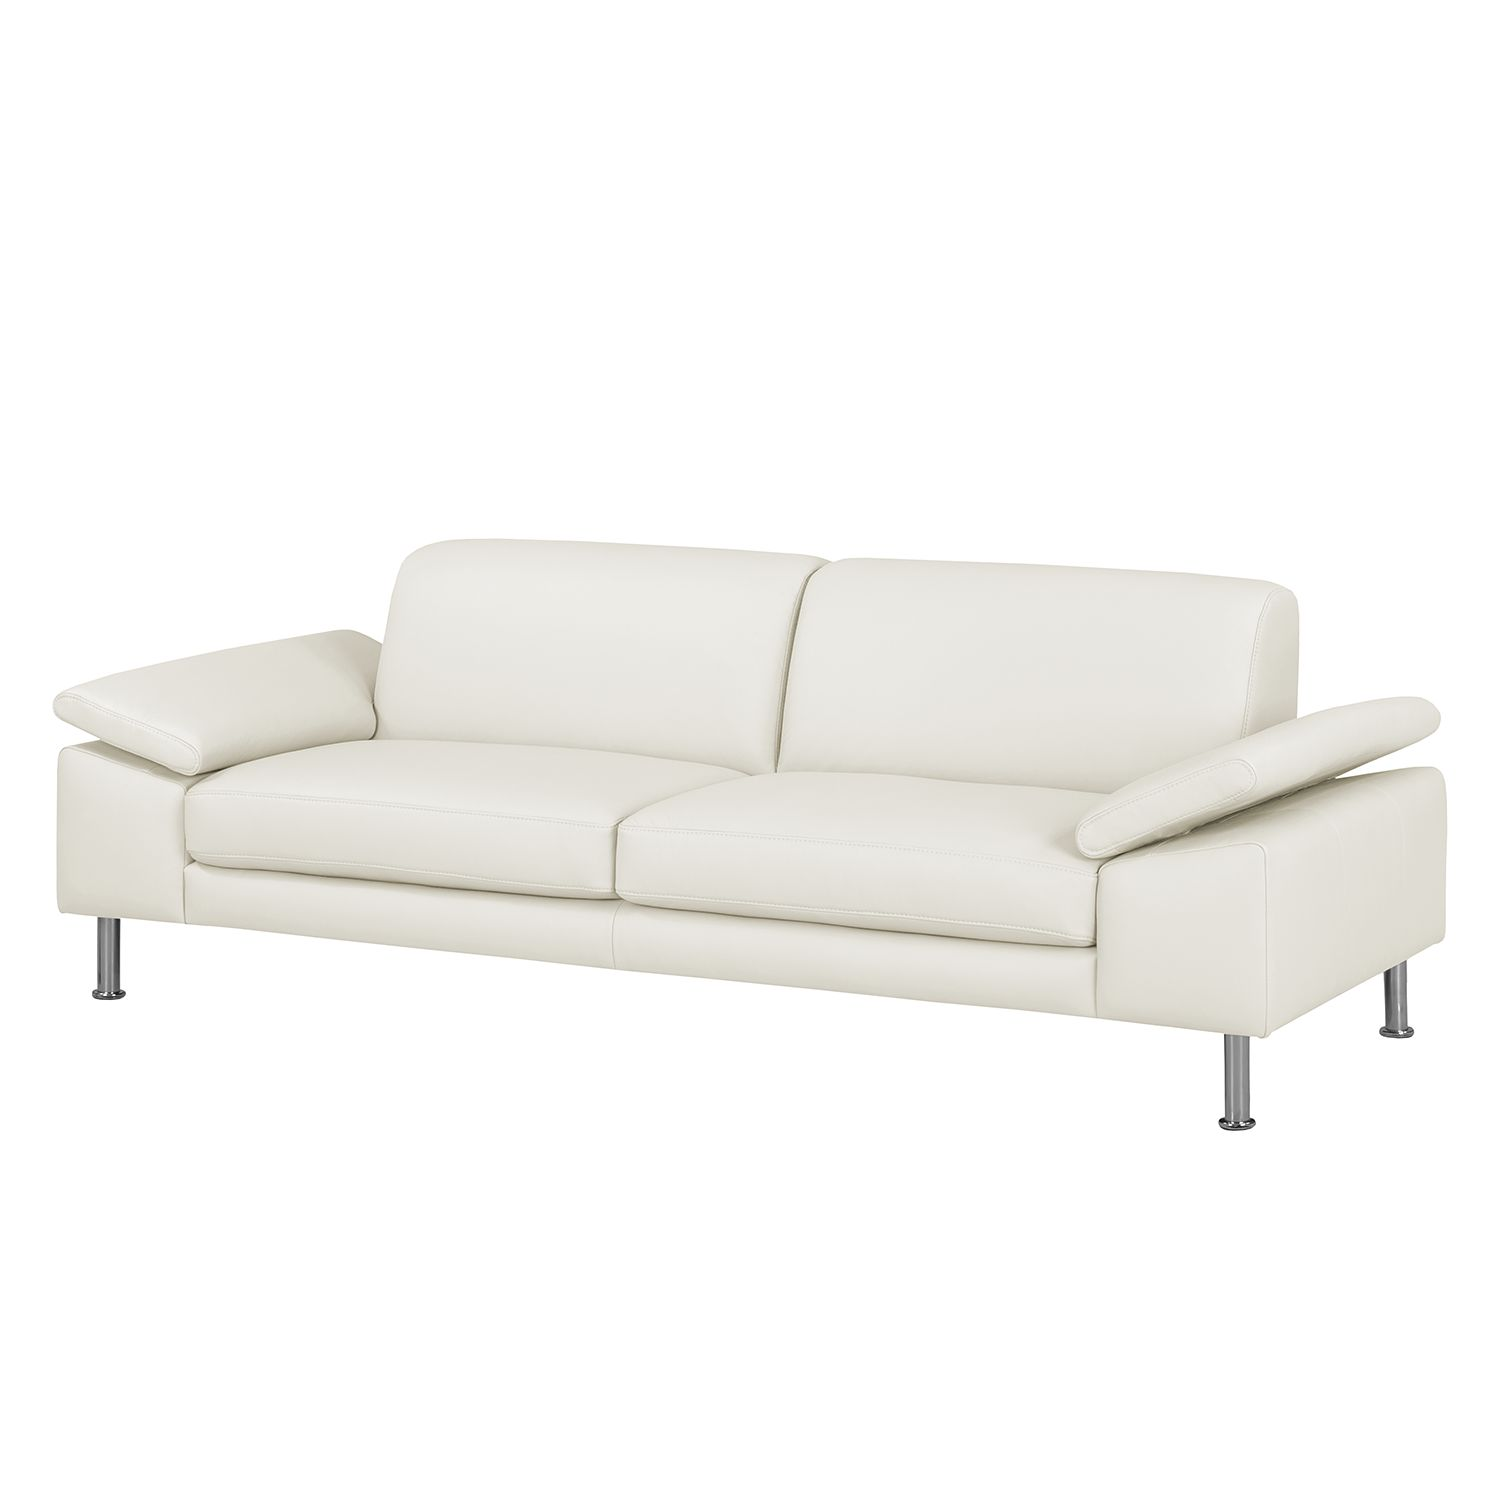 Ledersofa Weiss Ledersofa Weiss Cool Awesome Trendy Medium Size Of Couch Wei Big